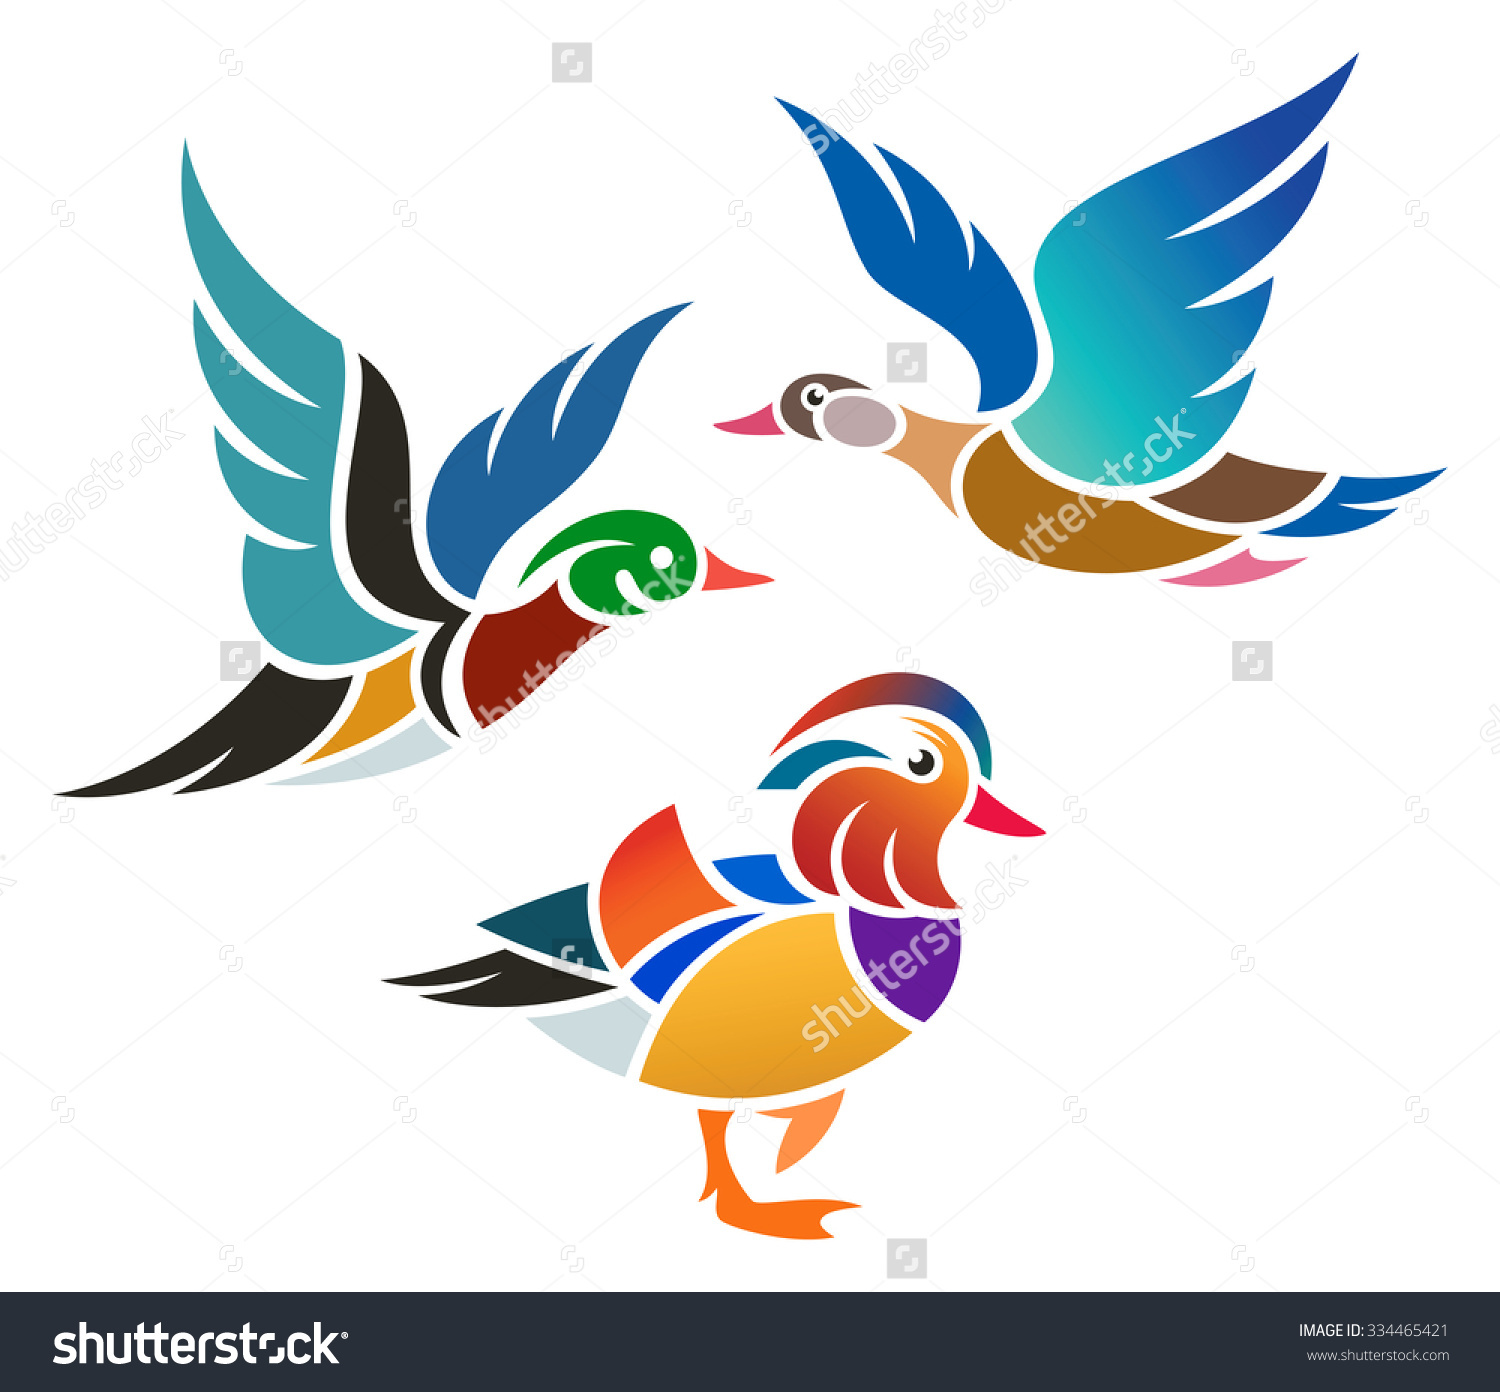 Stylized Ducks Wood Duck Mandarin Duck Stock Vector 334465421.